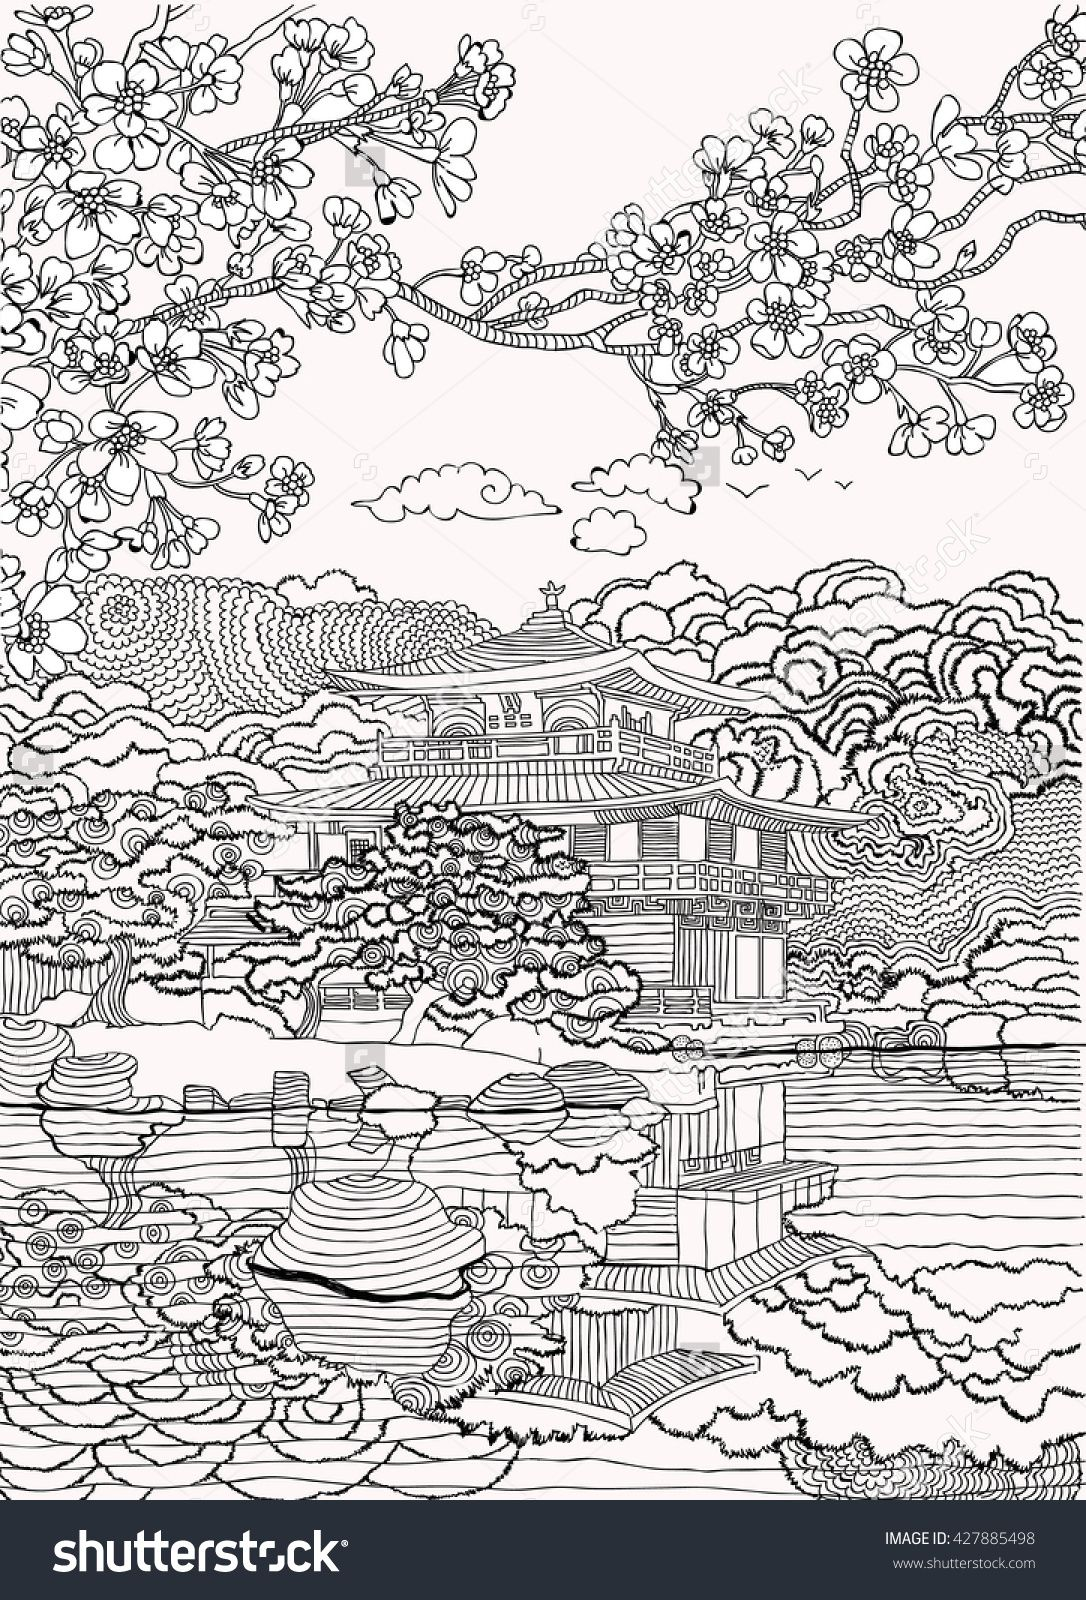 Free printable japanese coloring pages for adults - Japan Coloring Pages Shutterstock 427885498